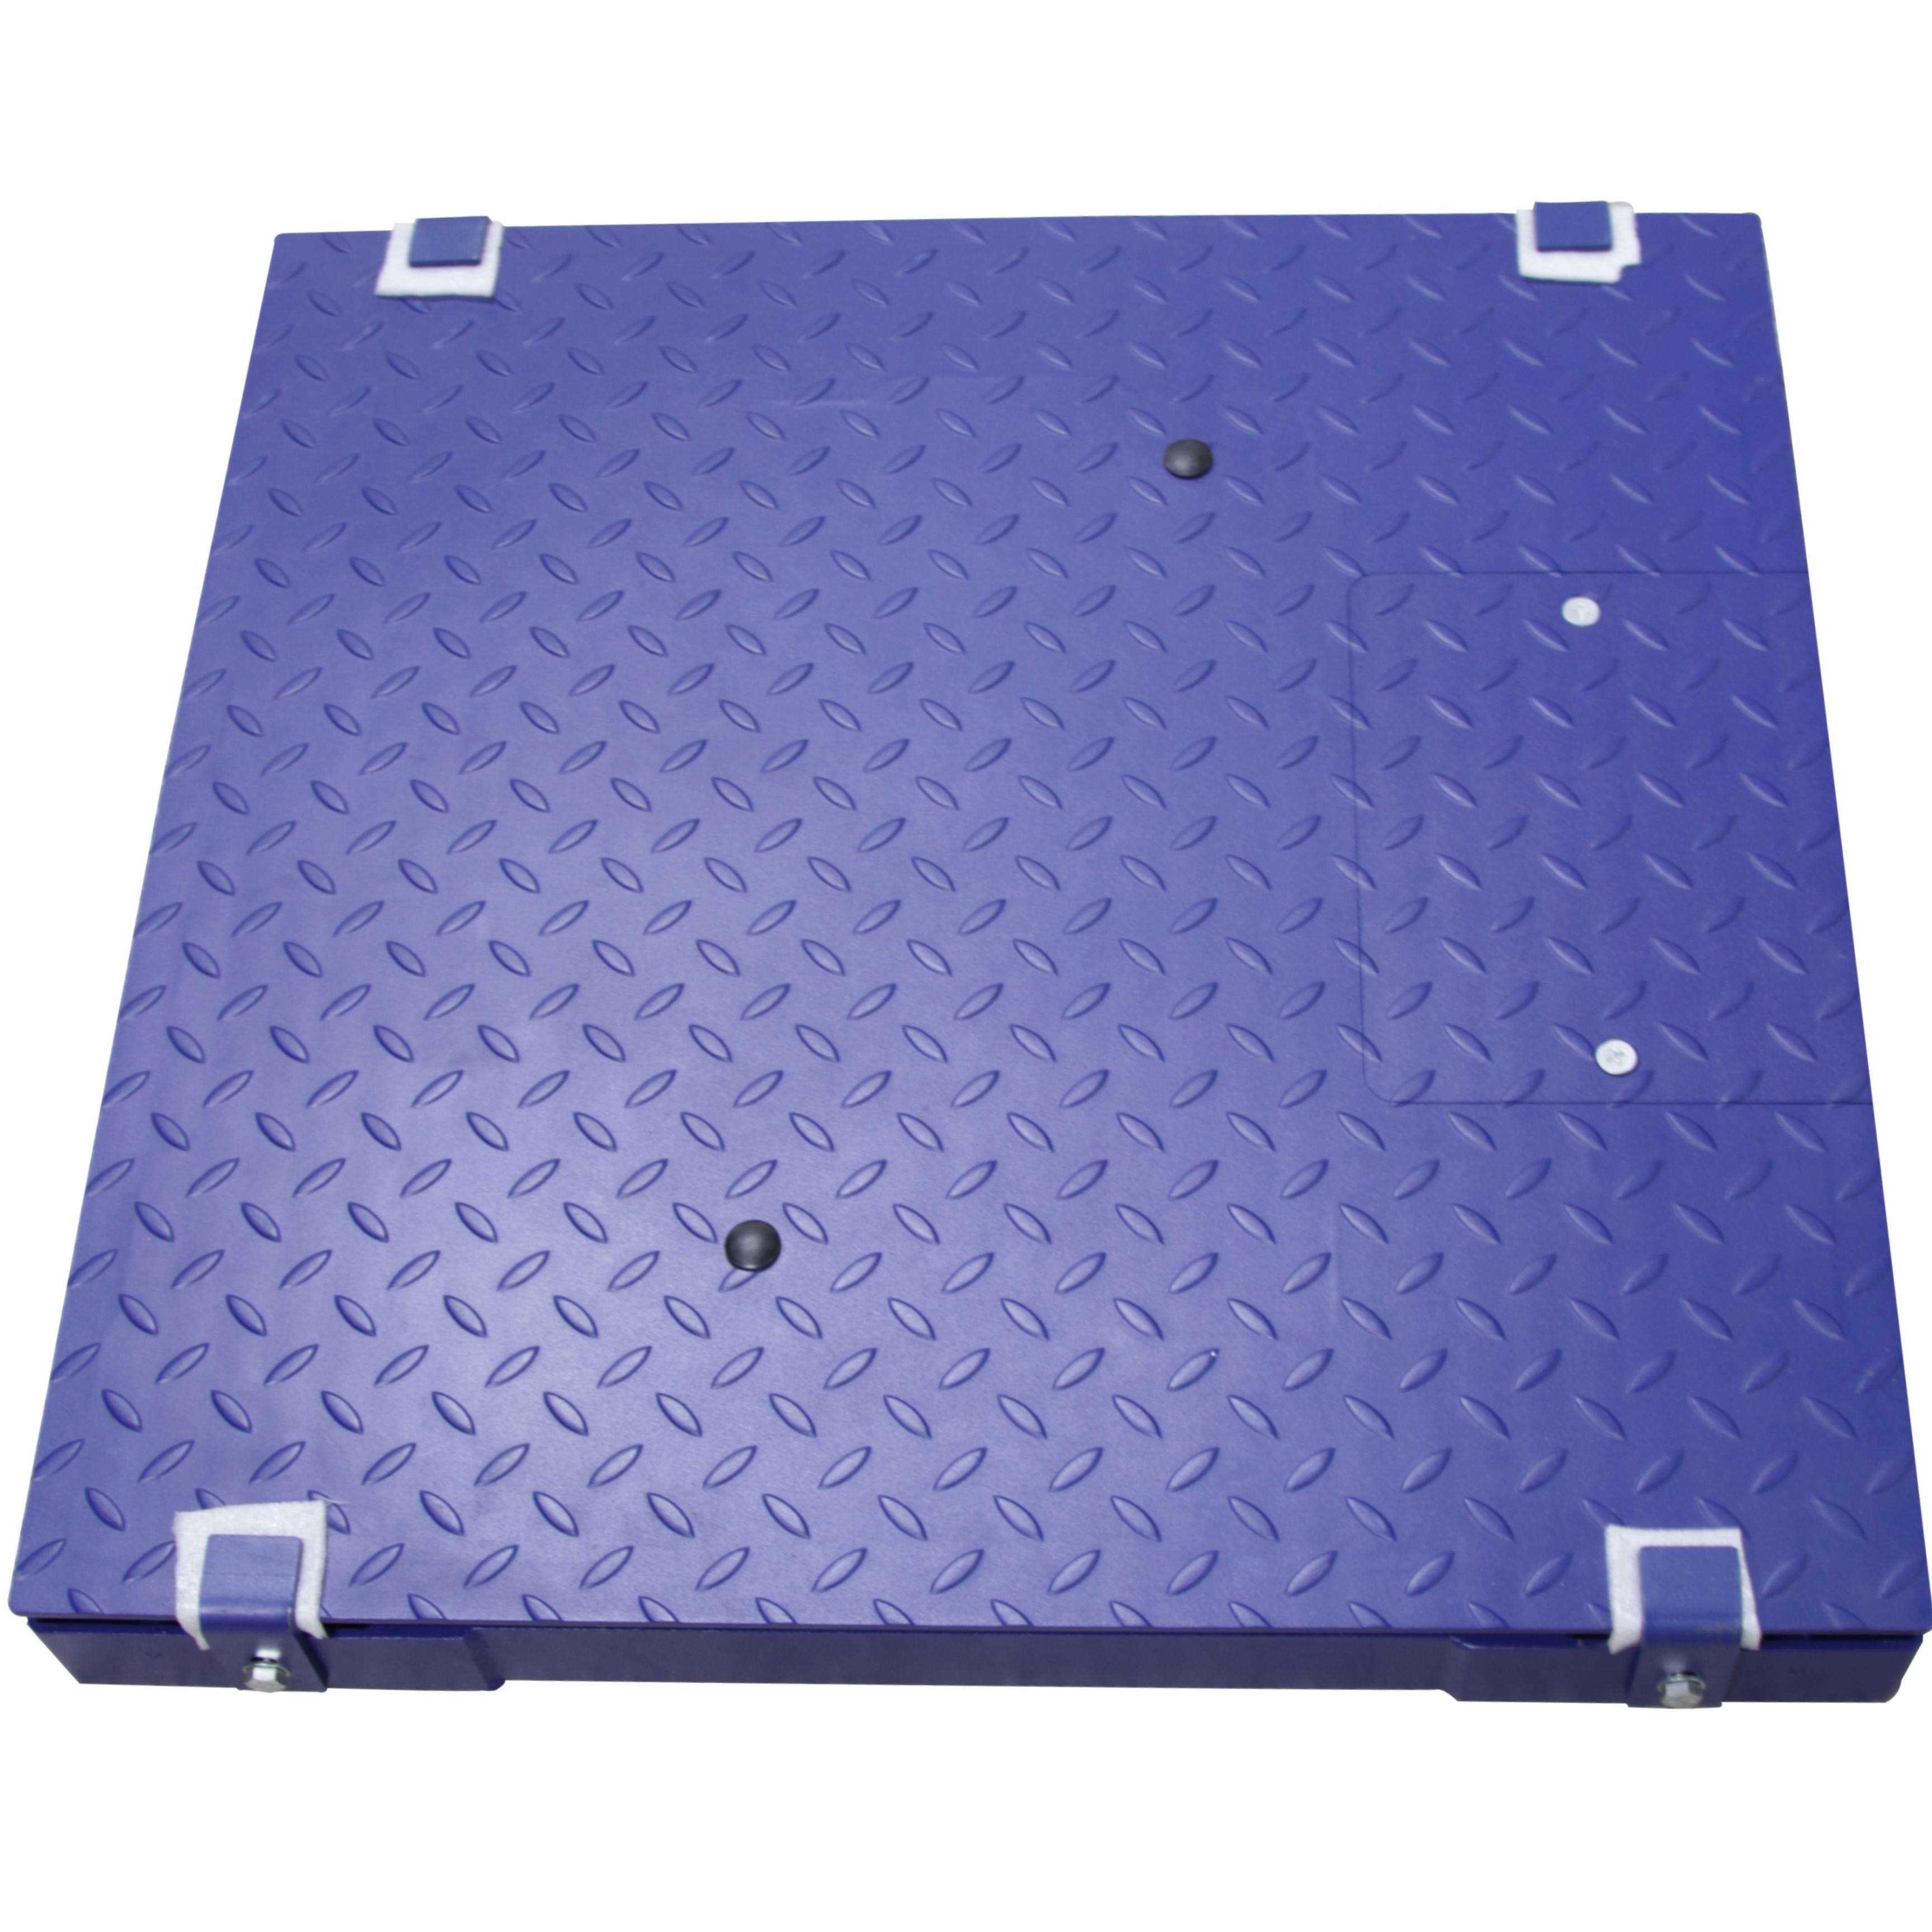 2 ton high quality carbon steel digital weight scale machine Platform floor Weighing Scale (PW)